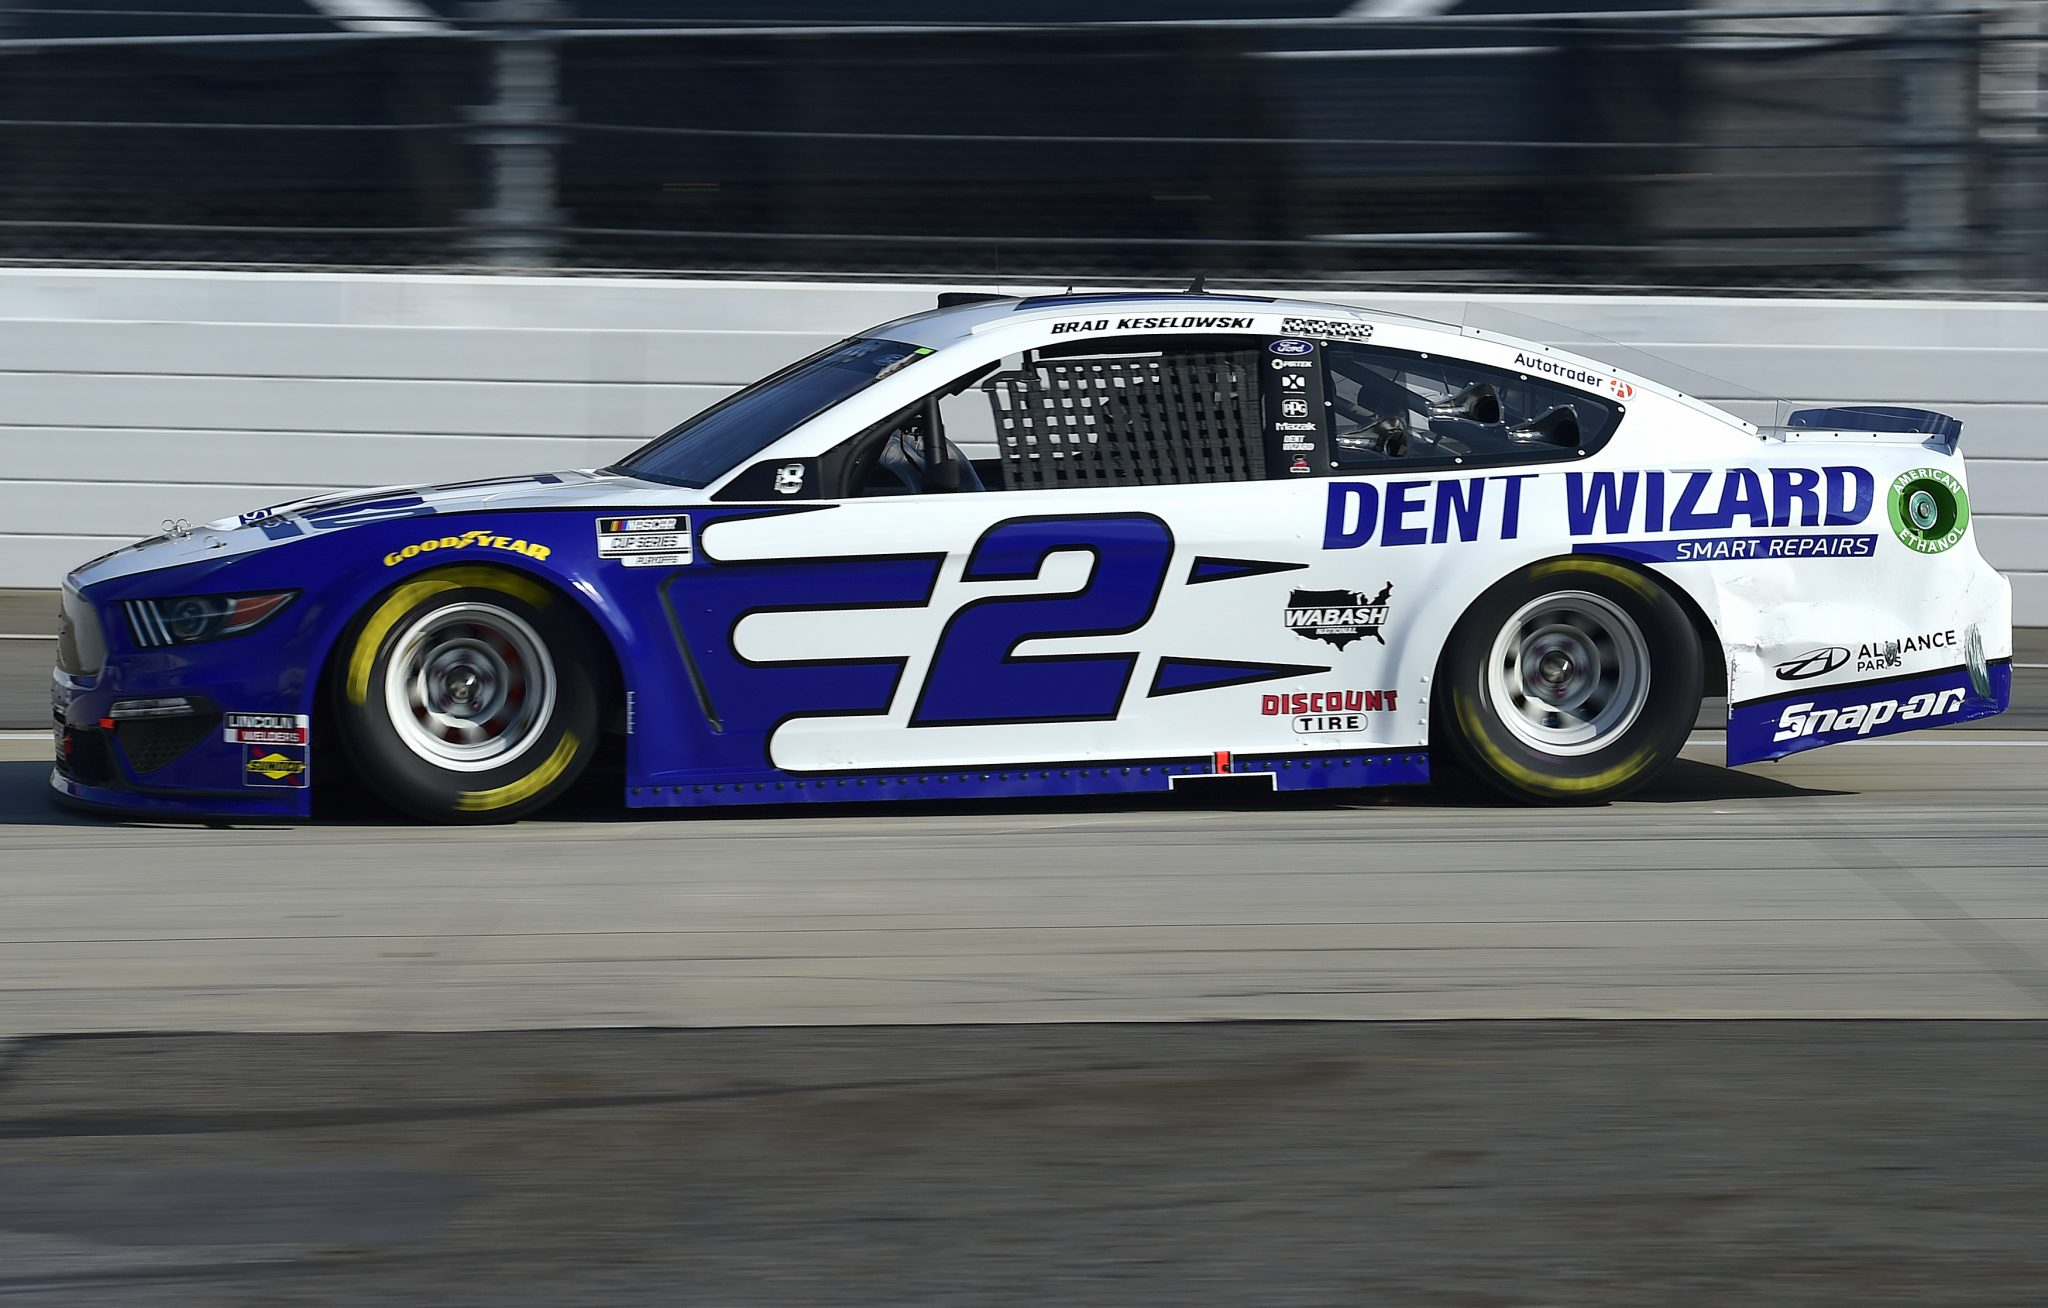 MARTINSVILLE, VIRGINIA - NOVEMBER 01: Brad Keselowski, driver of the #2 Dent Wizard Ford, drives during the NASCAR Cup Series Xfinity 500 at Martinsville Speedway on November 01, 2020 in Martinsville, Virginia. (Photo by Jared C. Tilton/Getty Images) | Getty Images